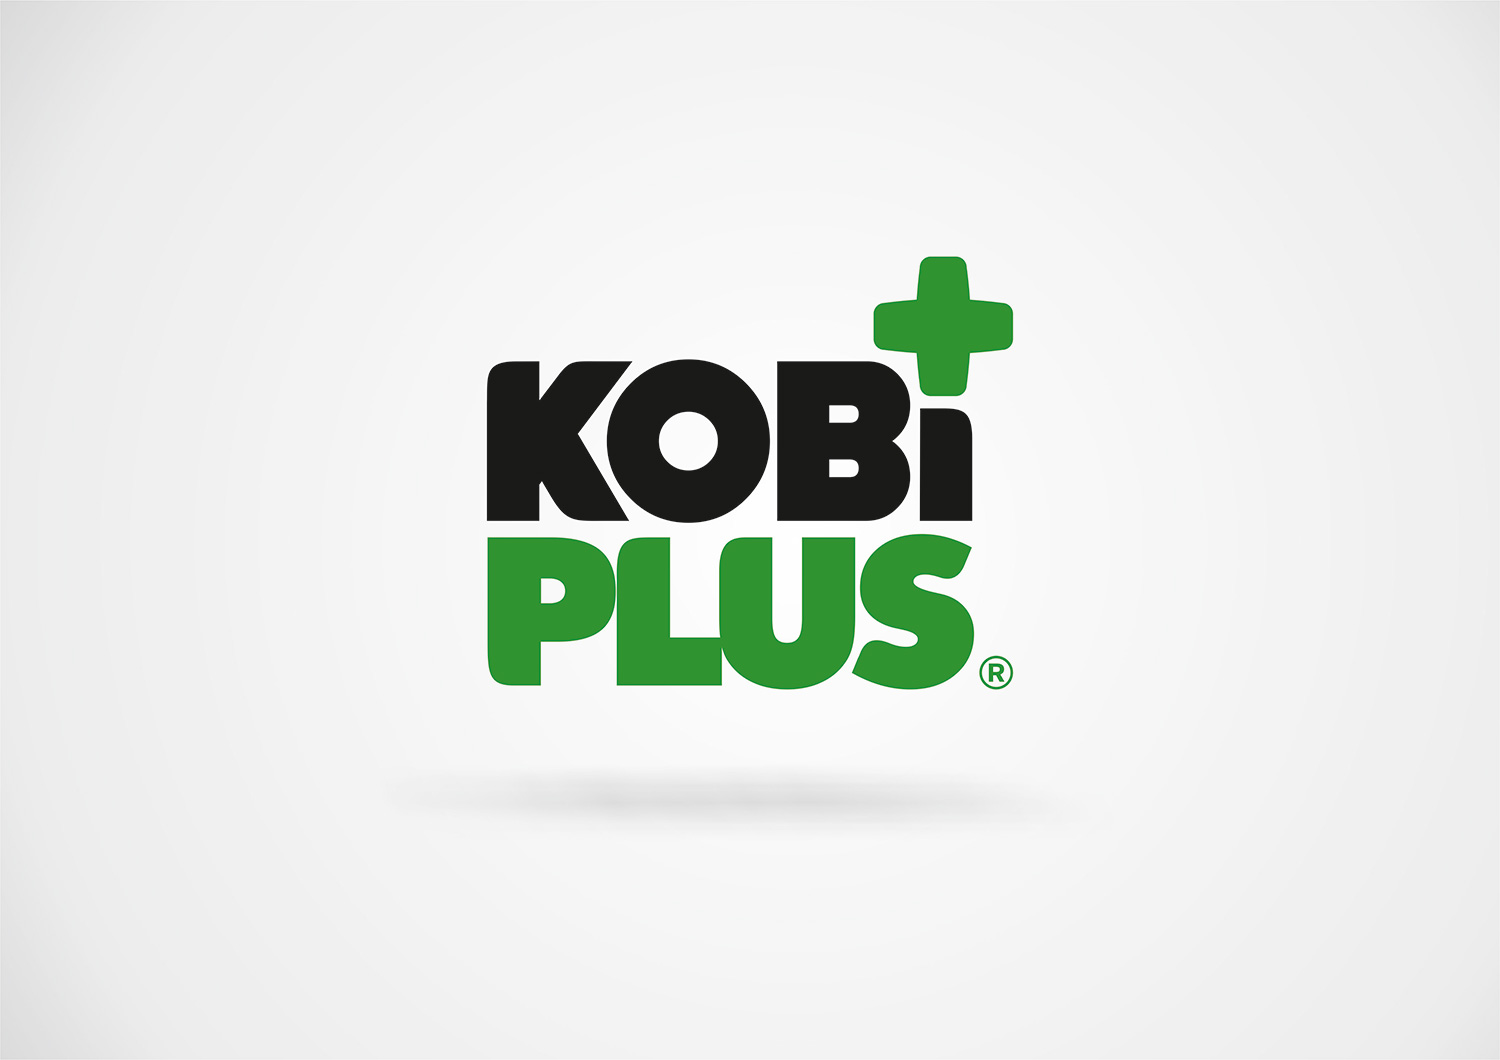 kobi plus logo